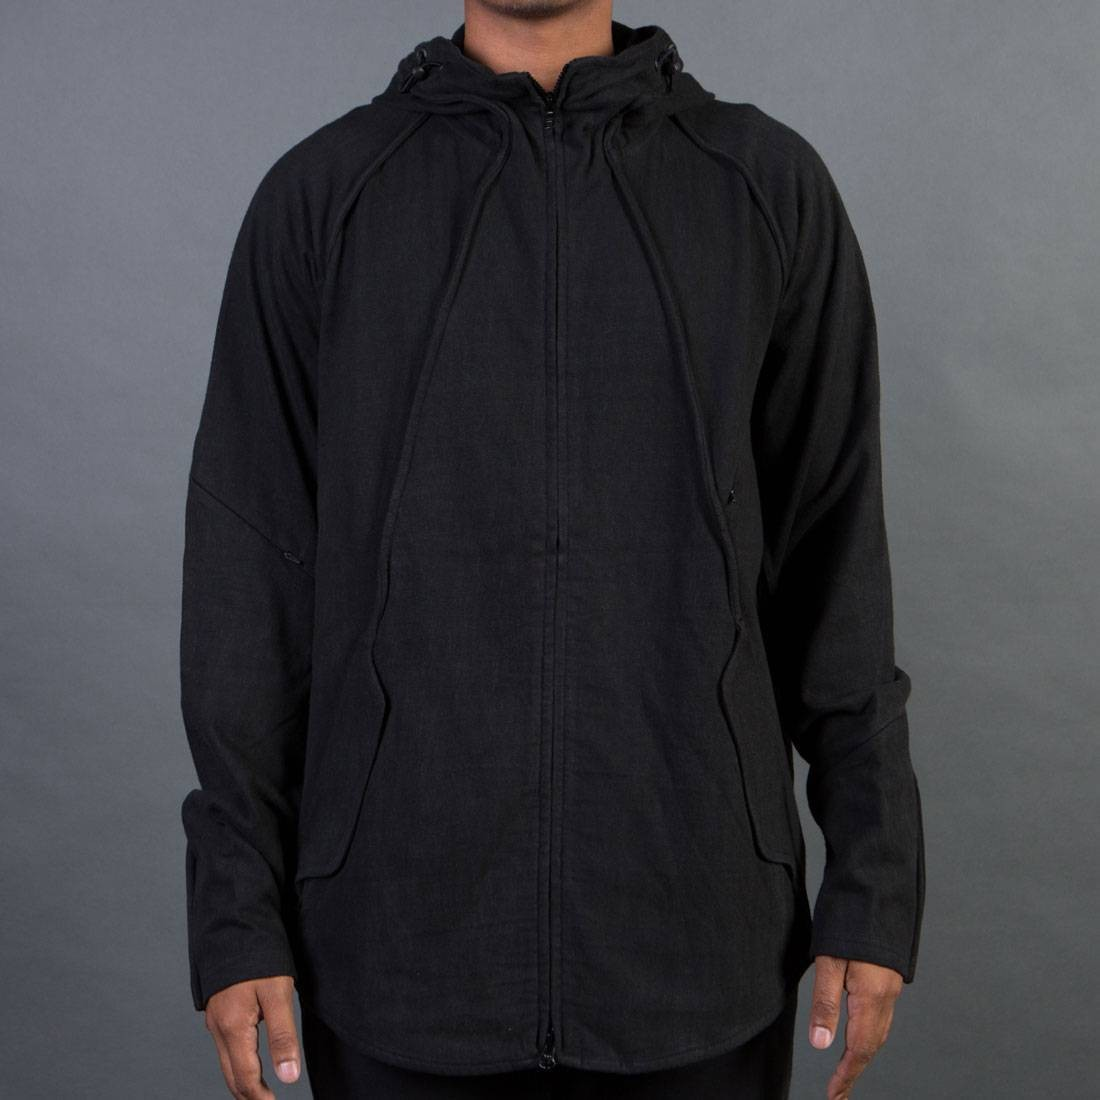 Adidas Y-3 Men Vintage Hood Jacket (black / blackened)